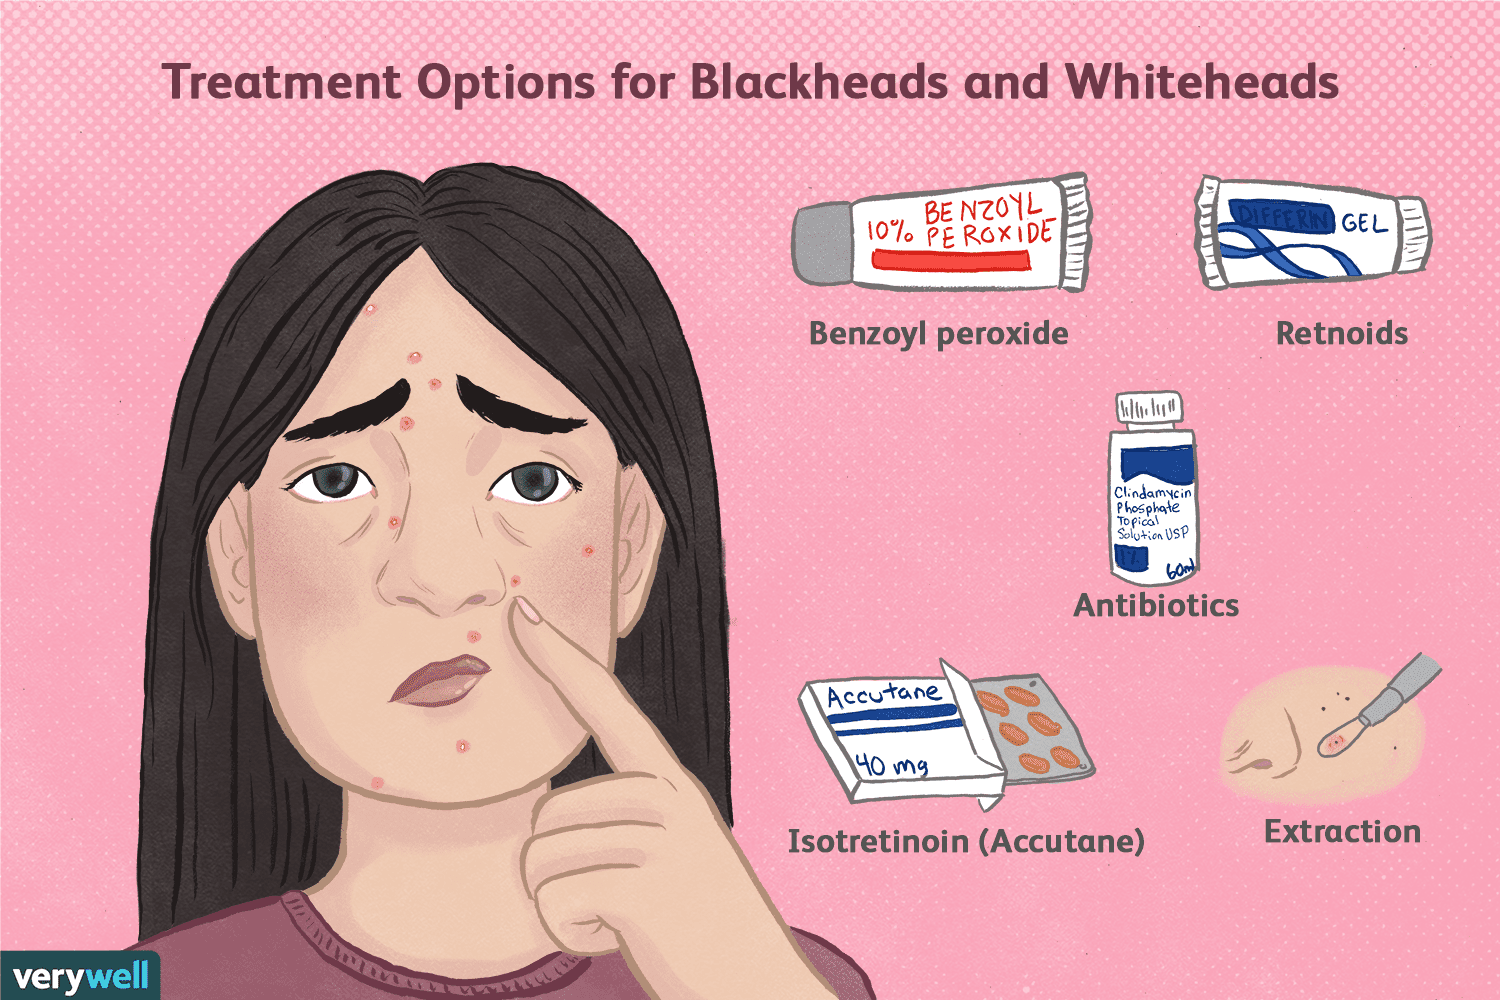 Blackheads and Whiteheads in Acne